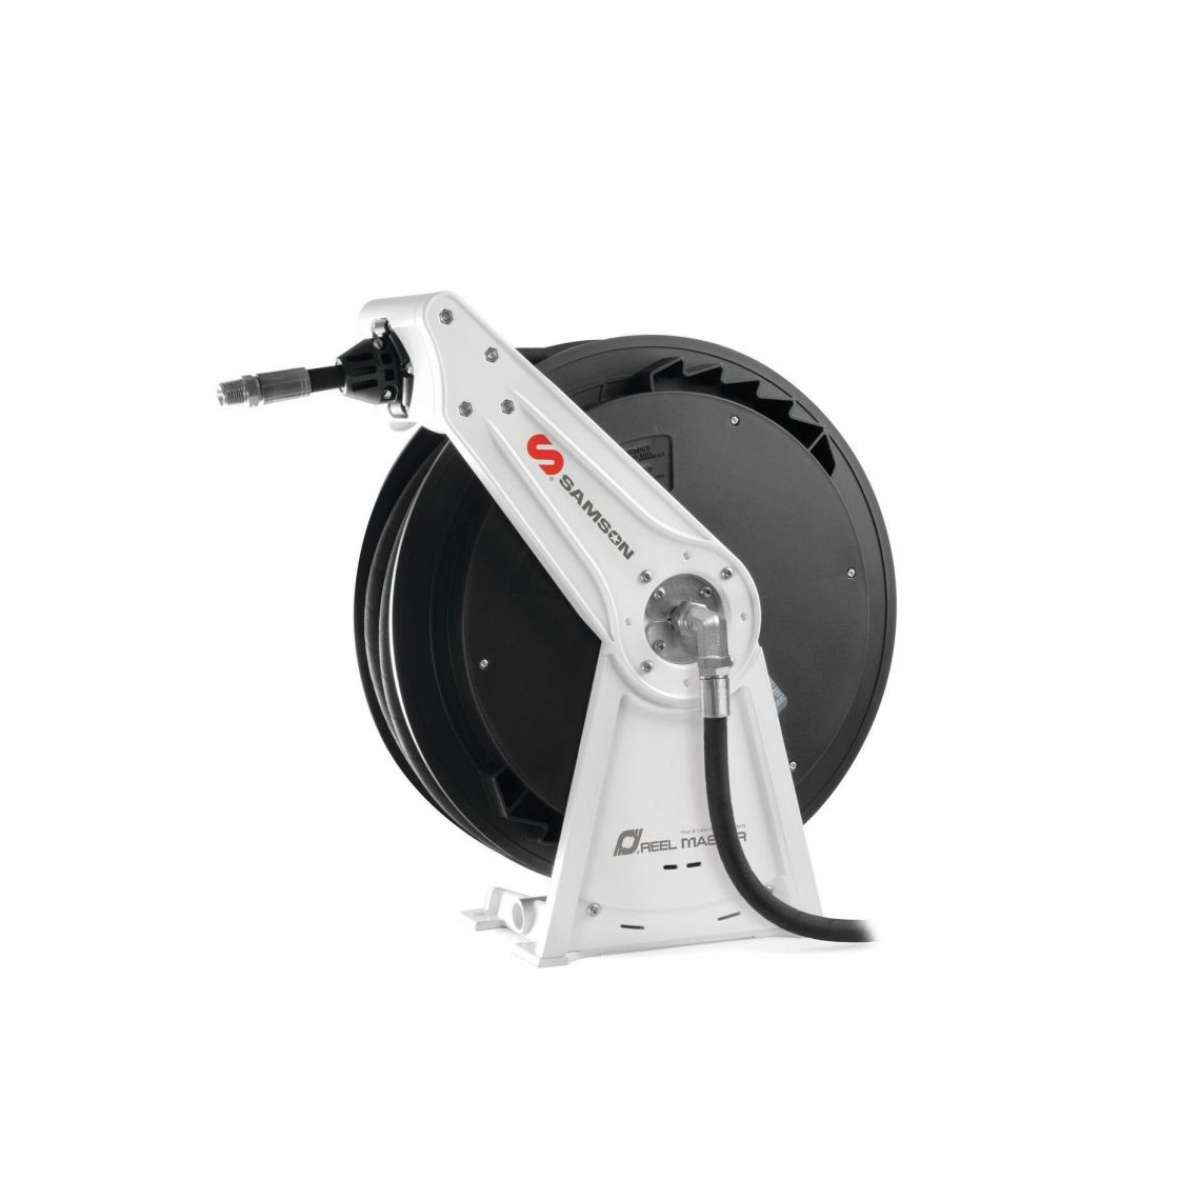 Samson 30 ft. Hose Reel for POD system with hoses/hose stop/air connecting hoses